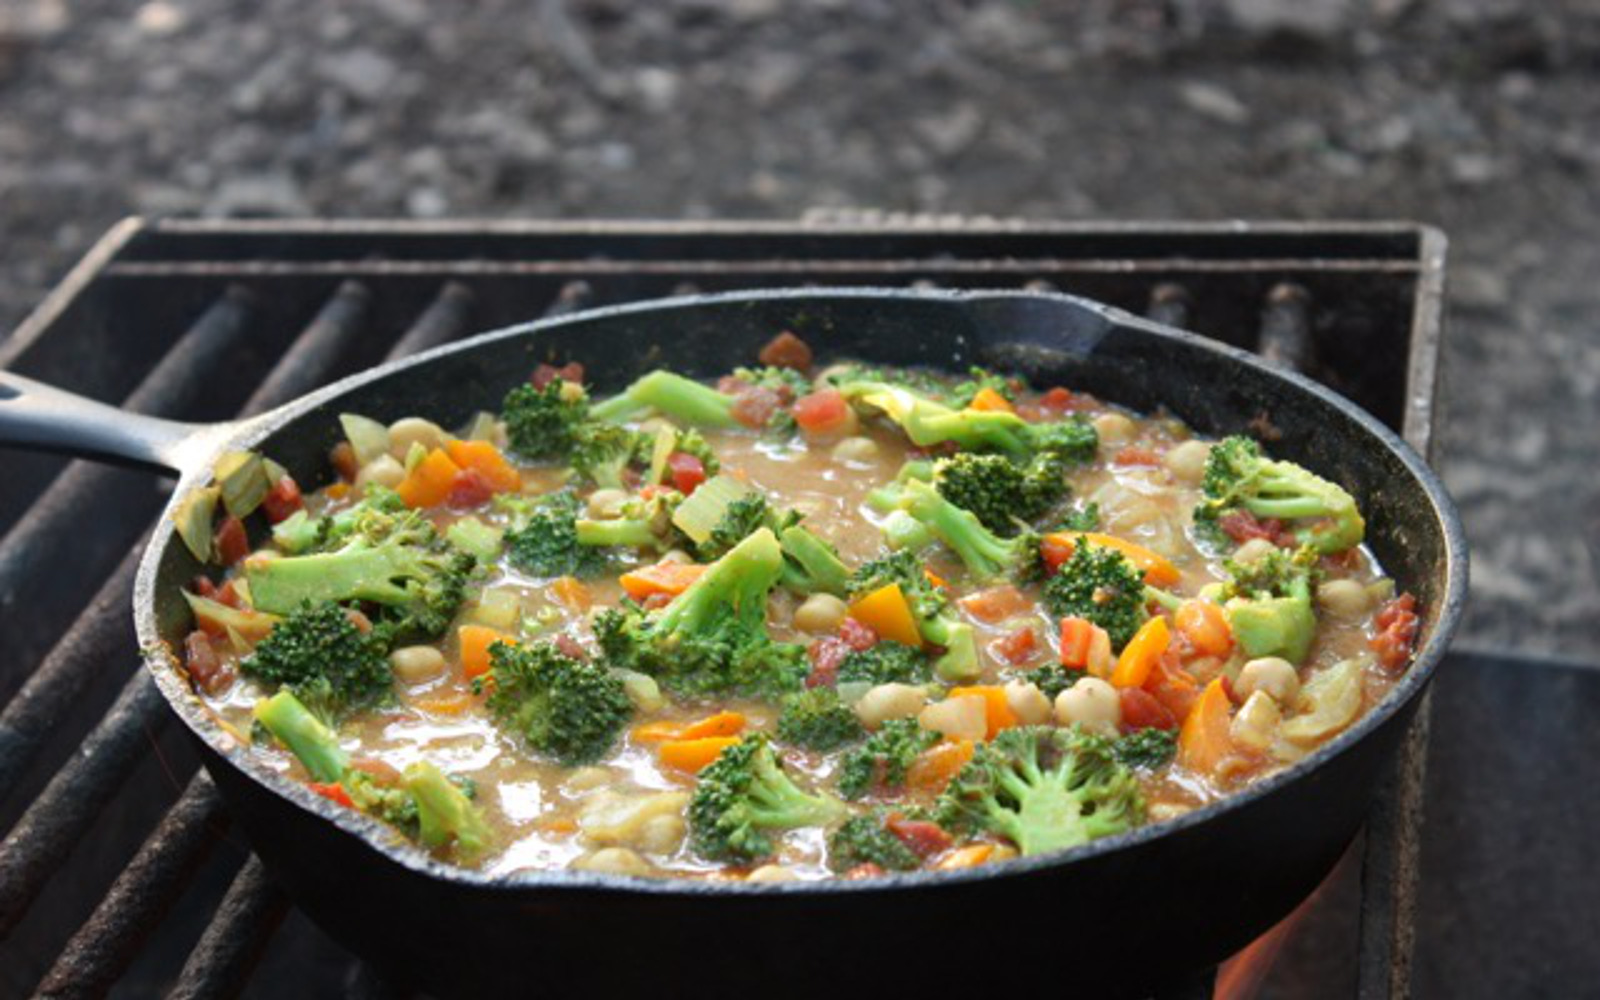 Campfire Broccoli and Chickpea Curry